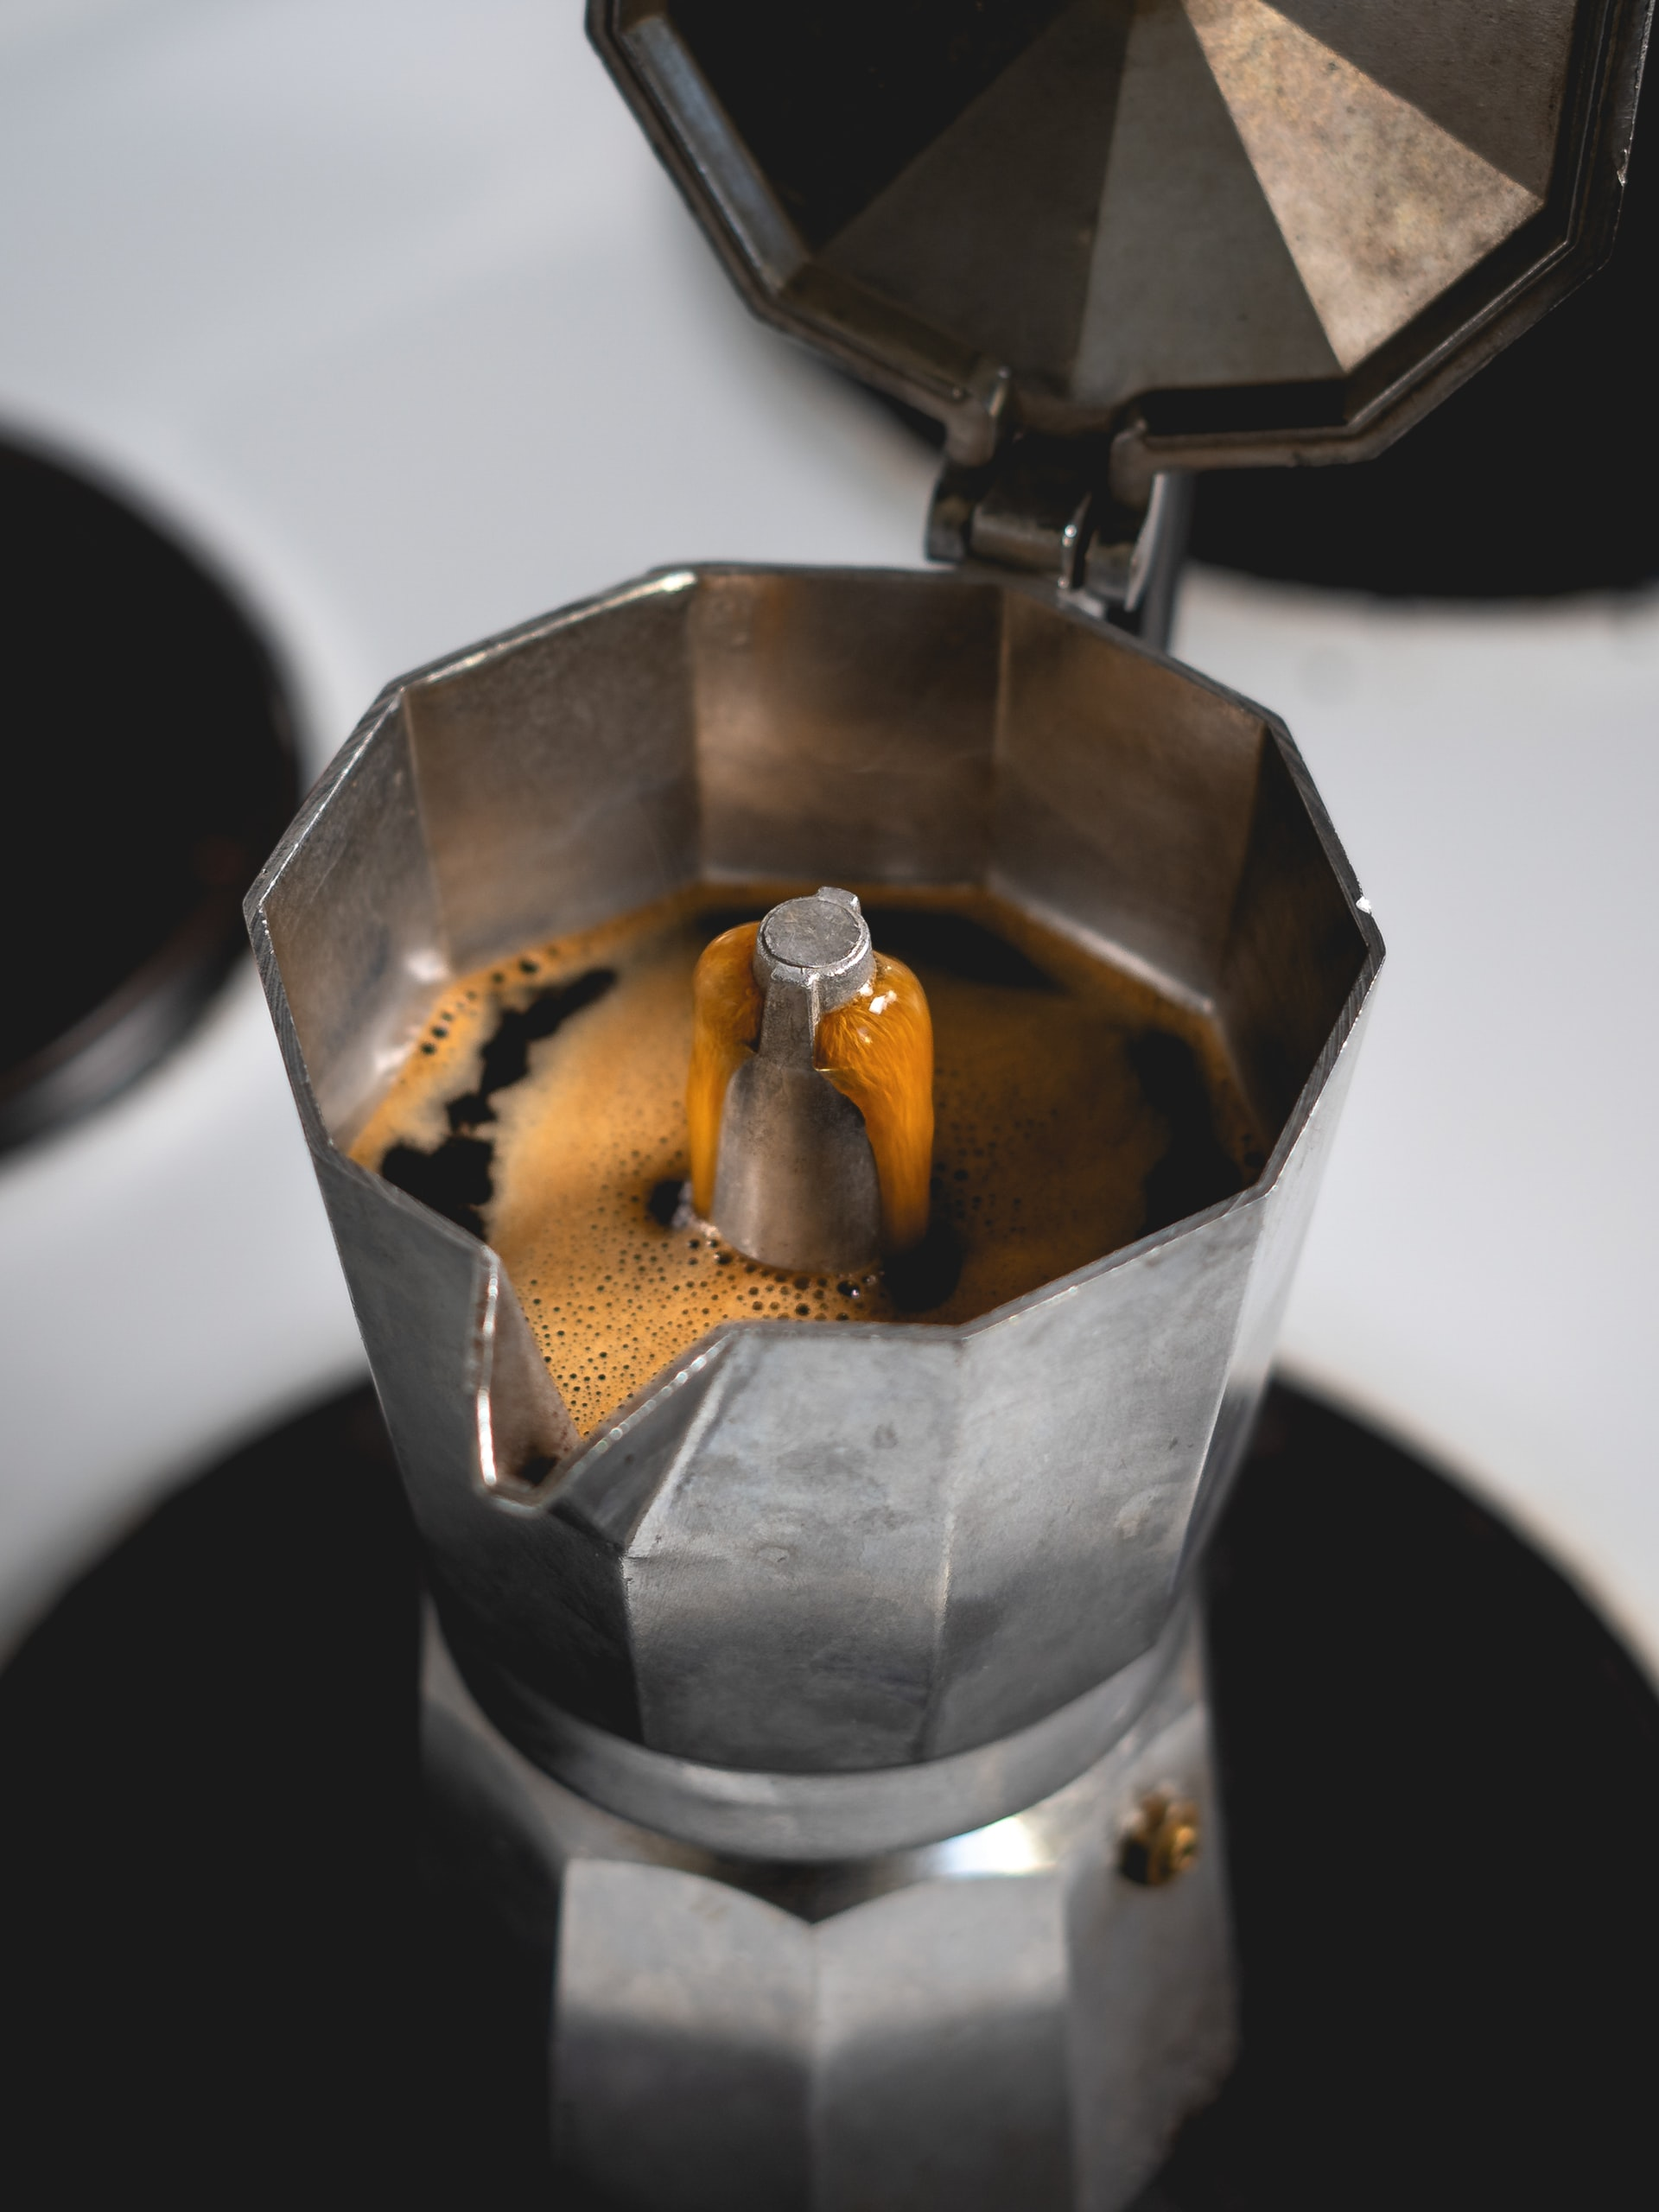 Espresso coffee brewing in a traditional moka pot machine